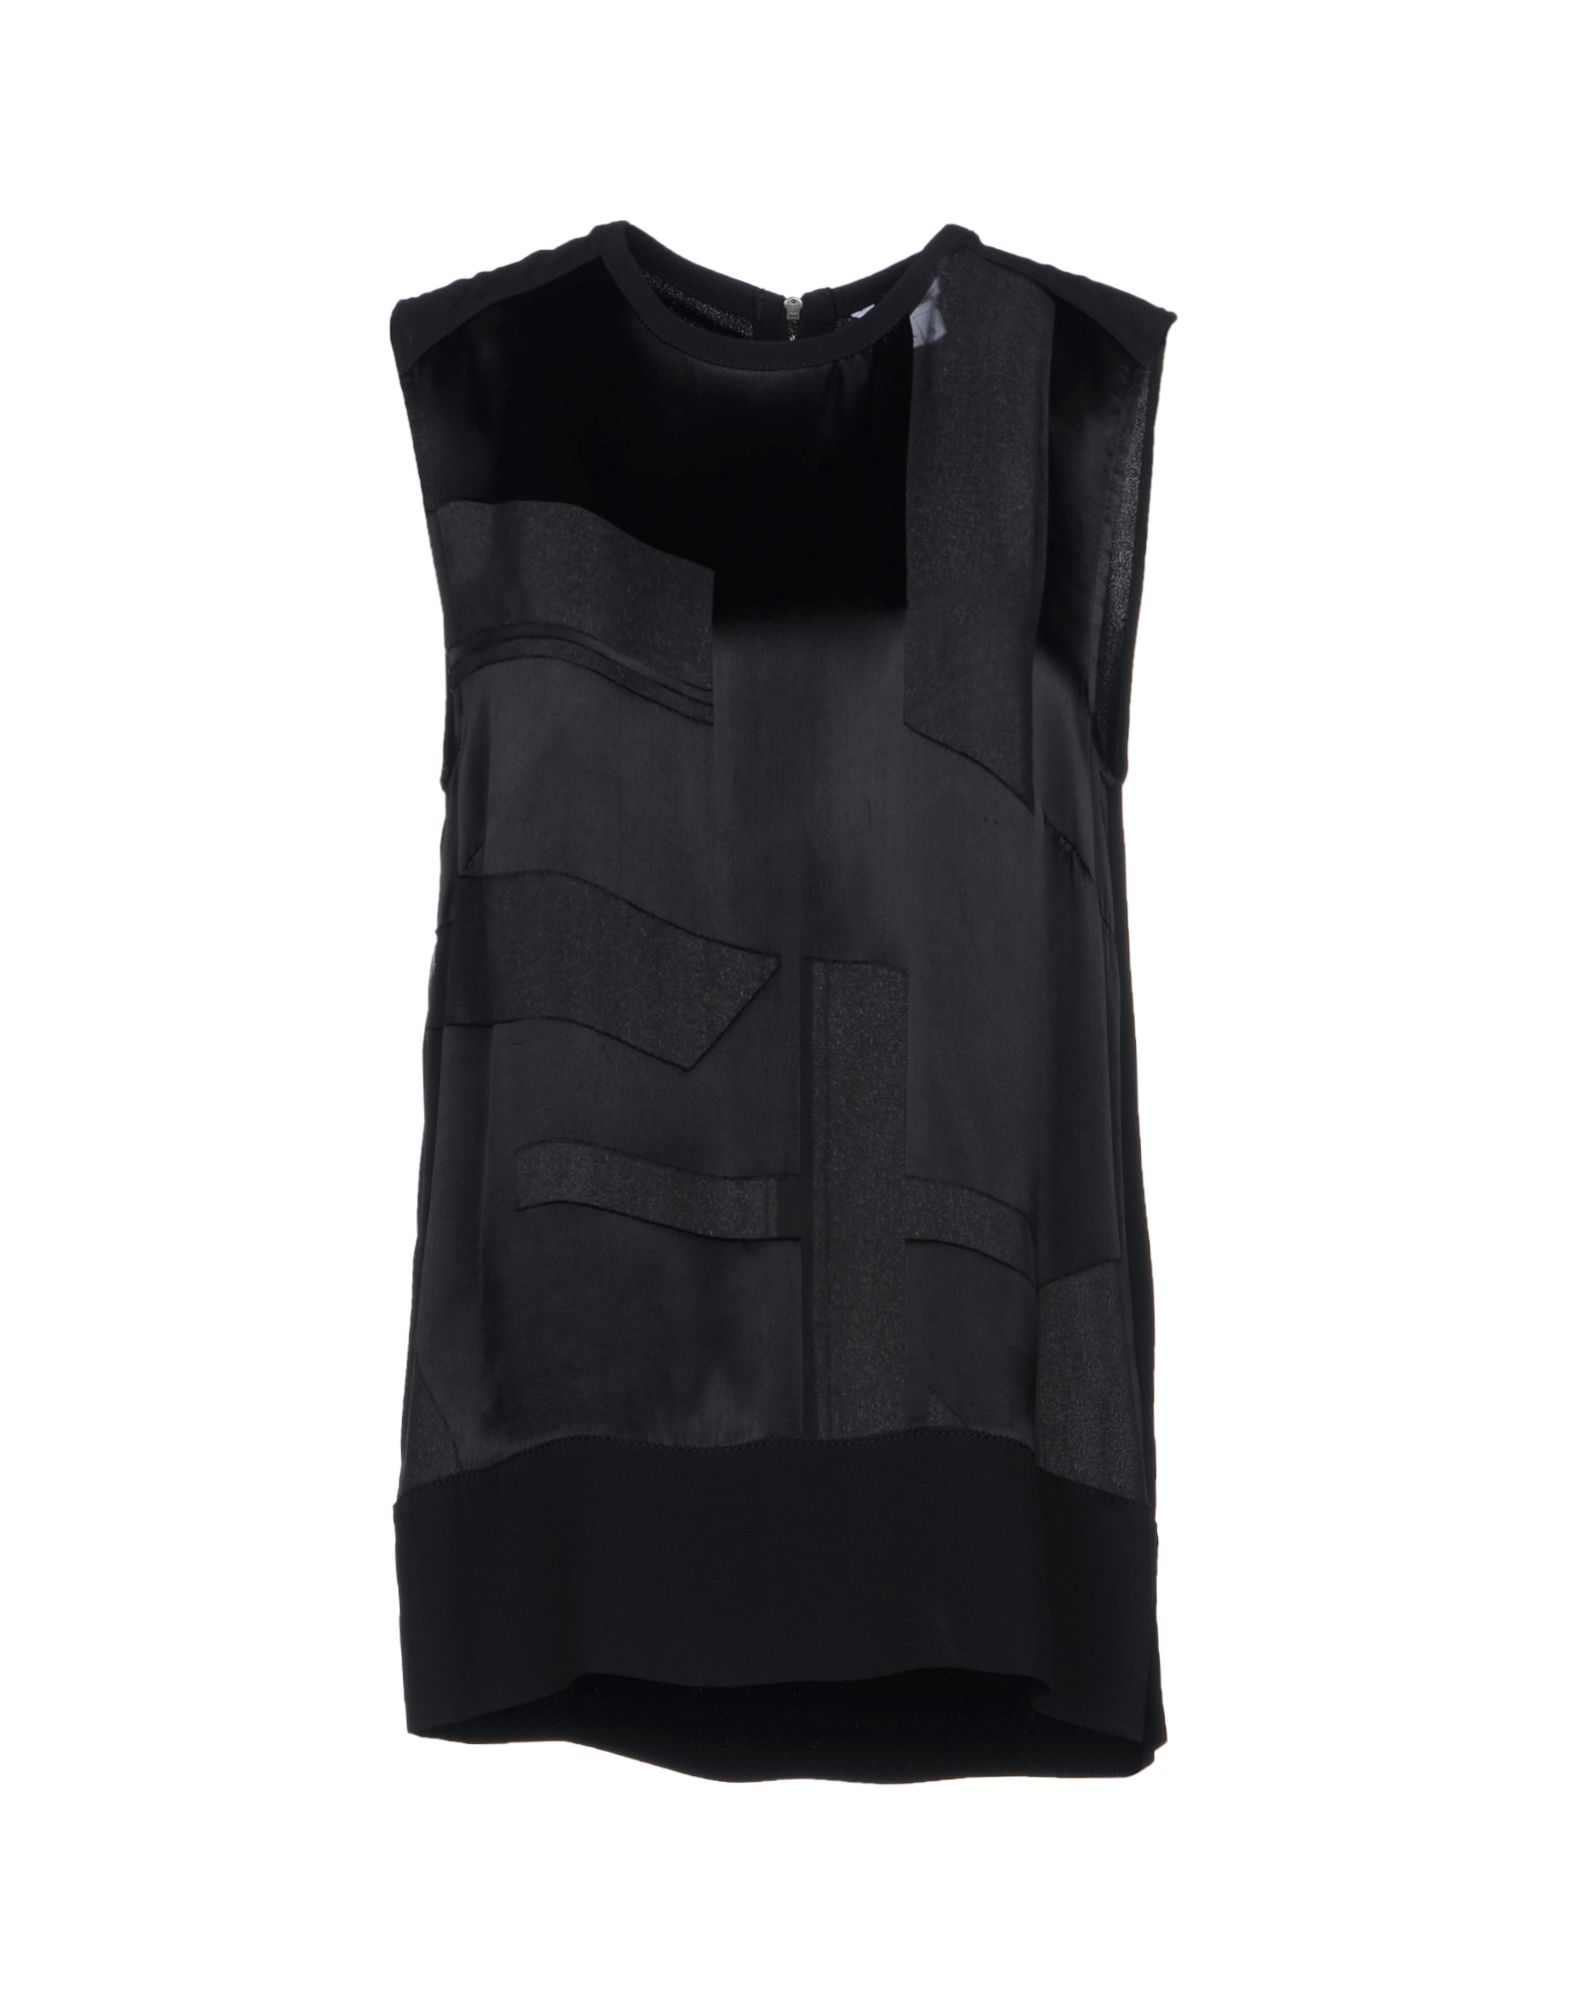 Top Helmut Lang Donna - Acquista online su 1NqTlE5PW